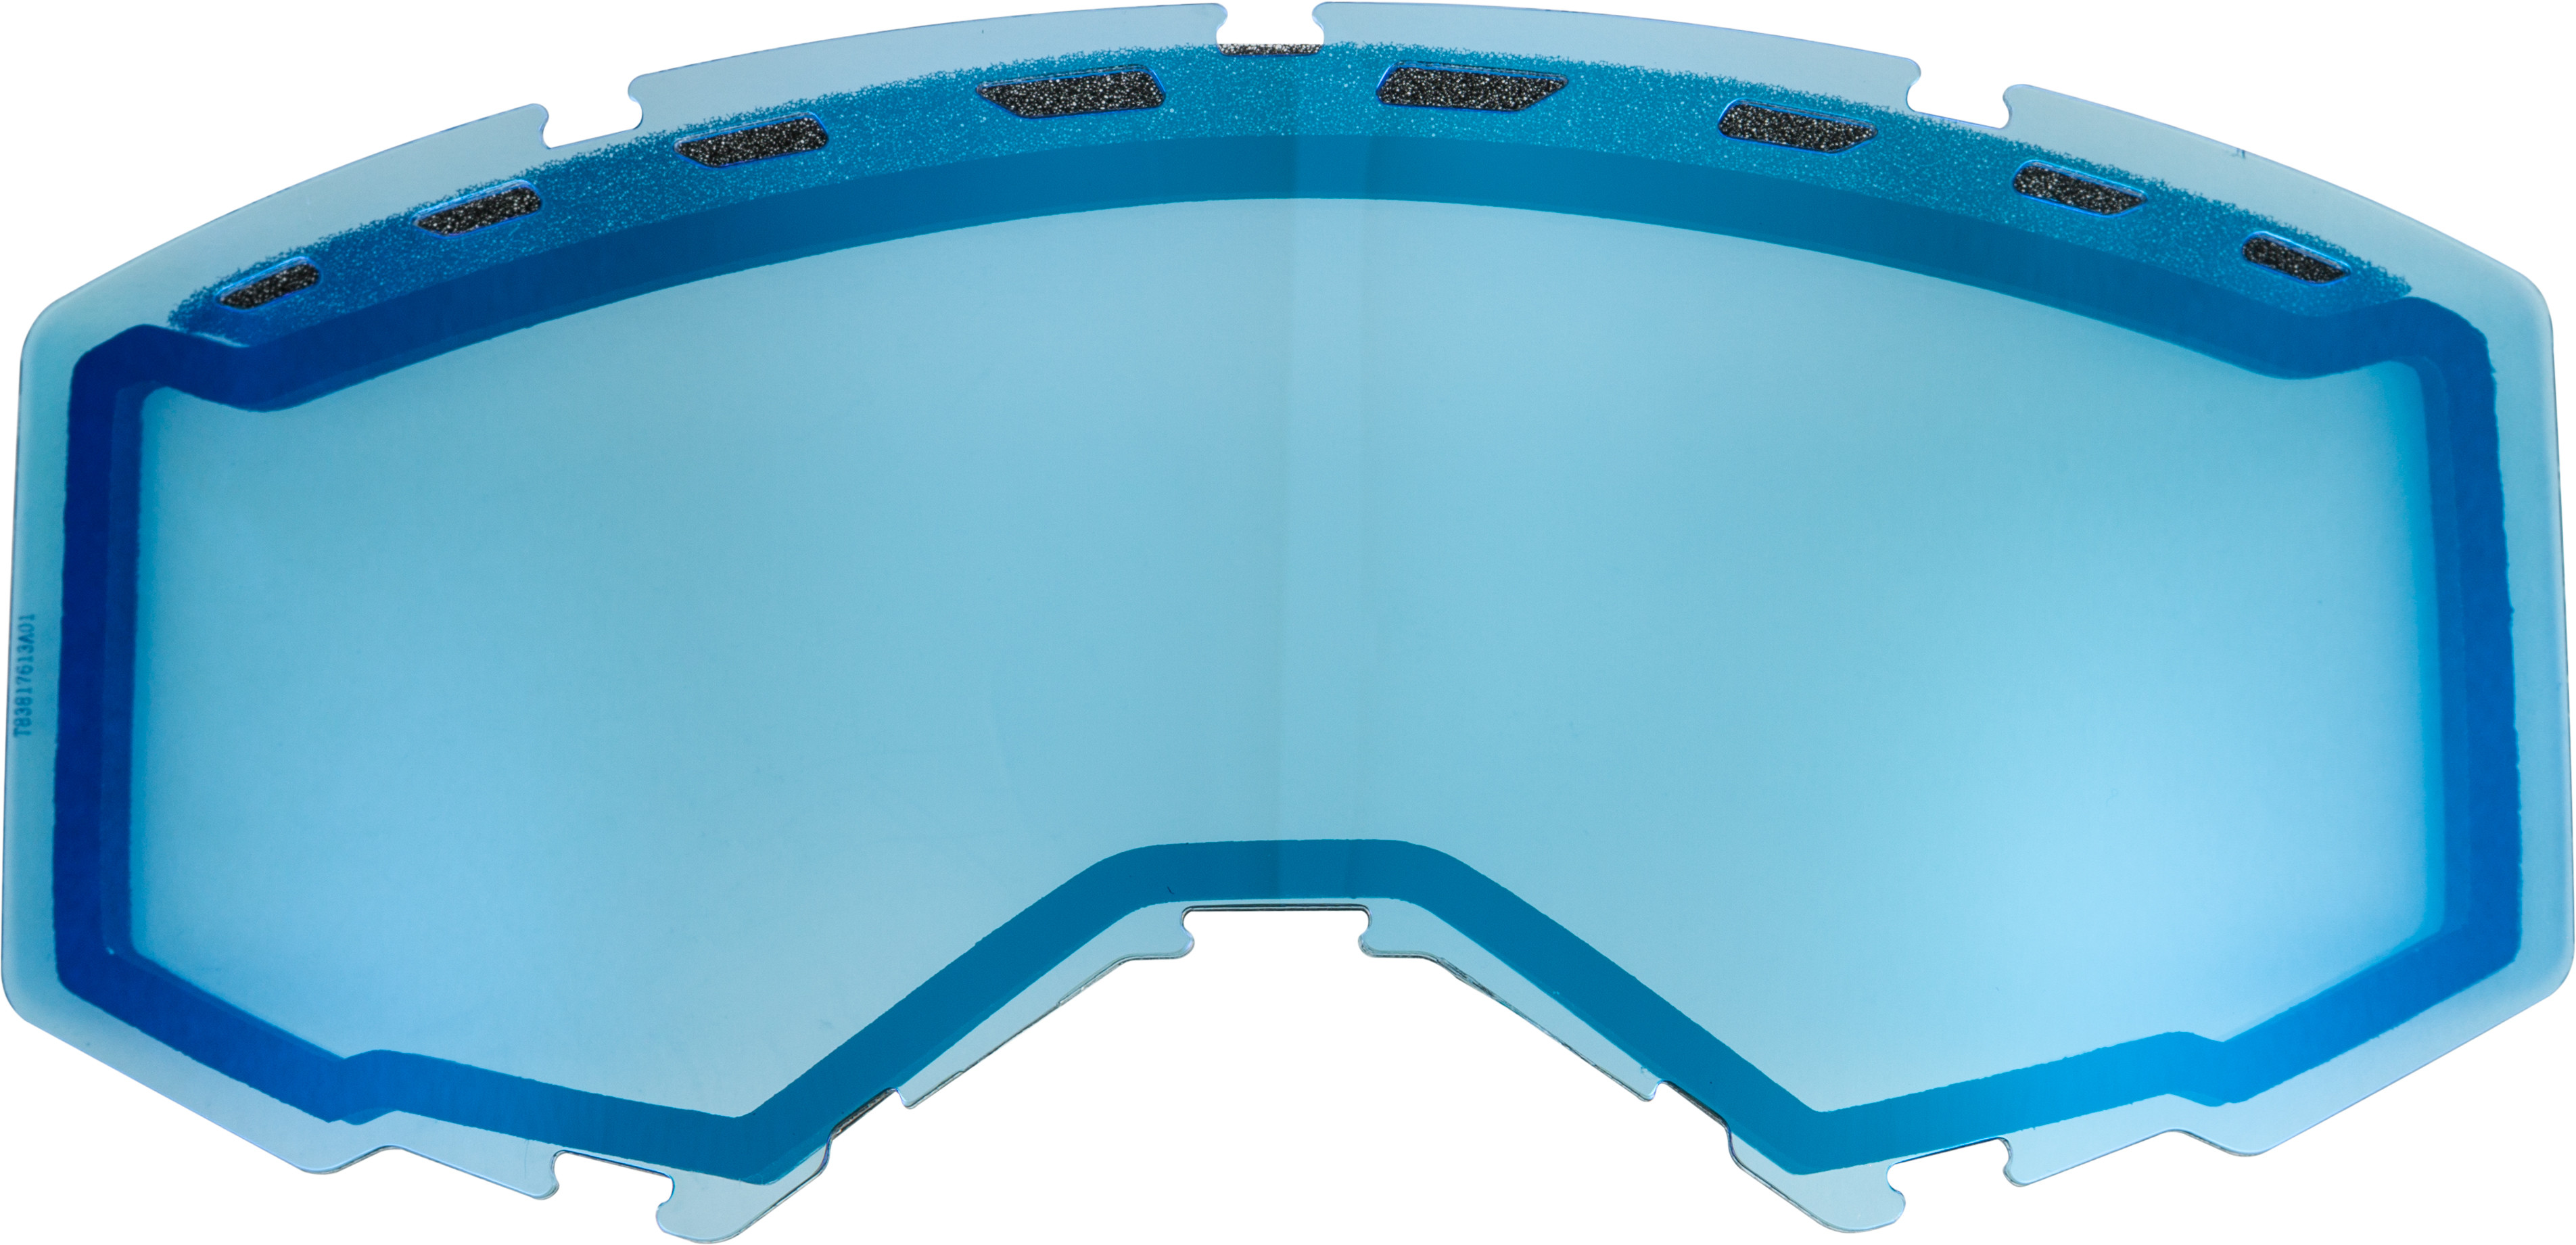 DUAL LENS WITH VENTS ADULT SKY BLUE MIRROR BLUE